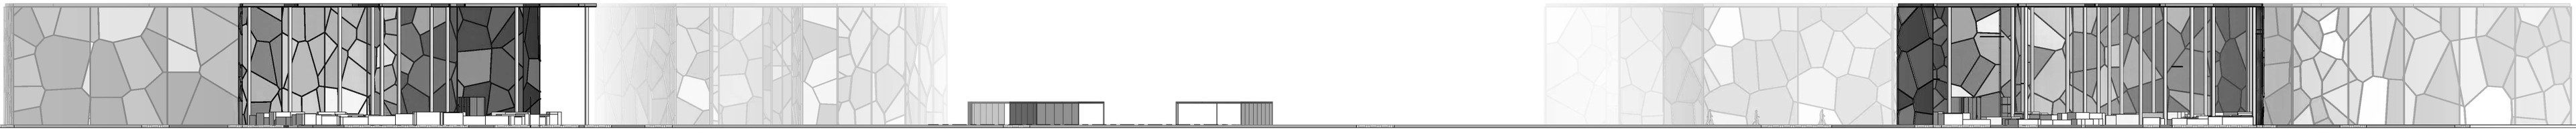 section through site